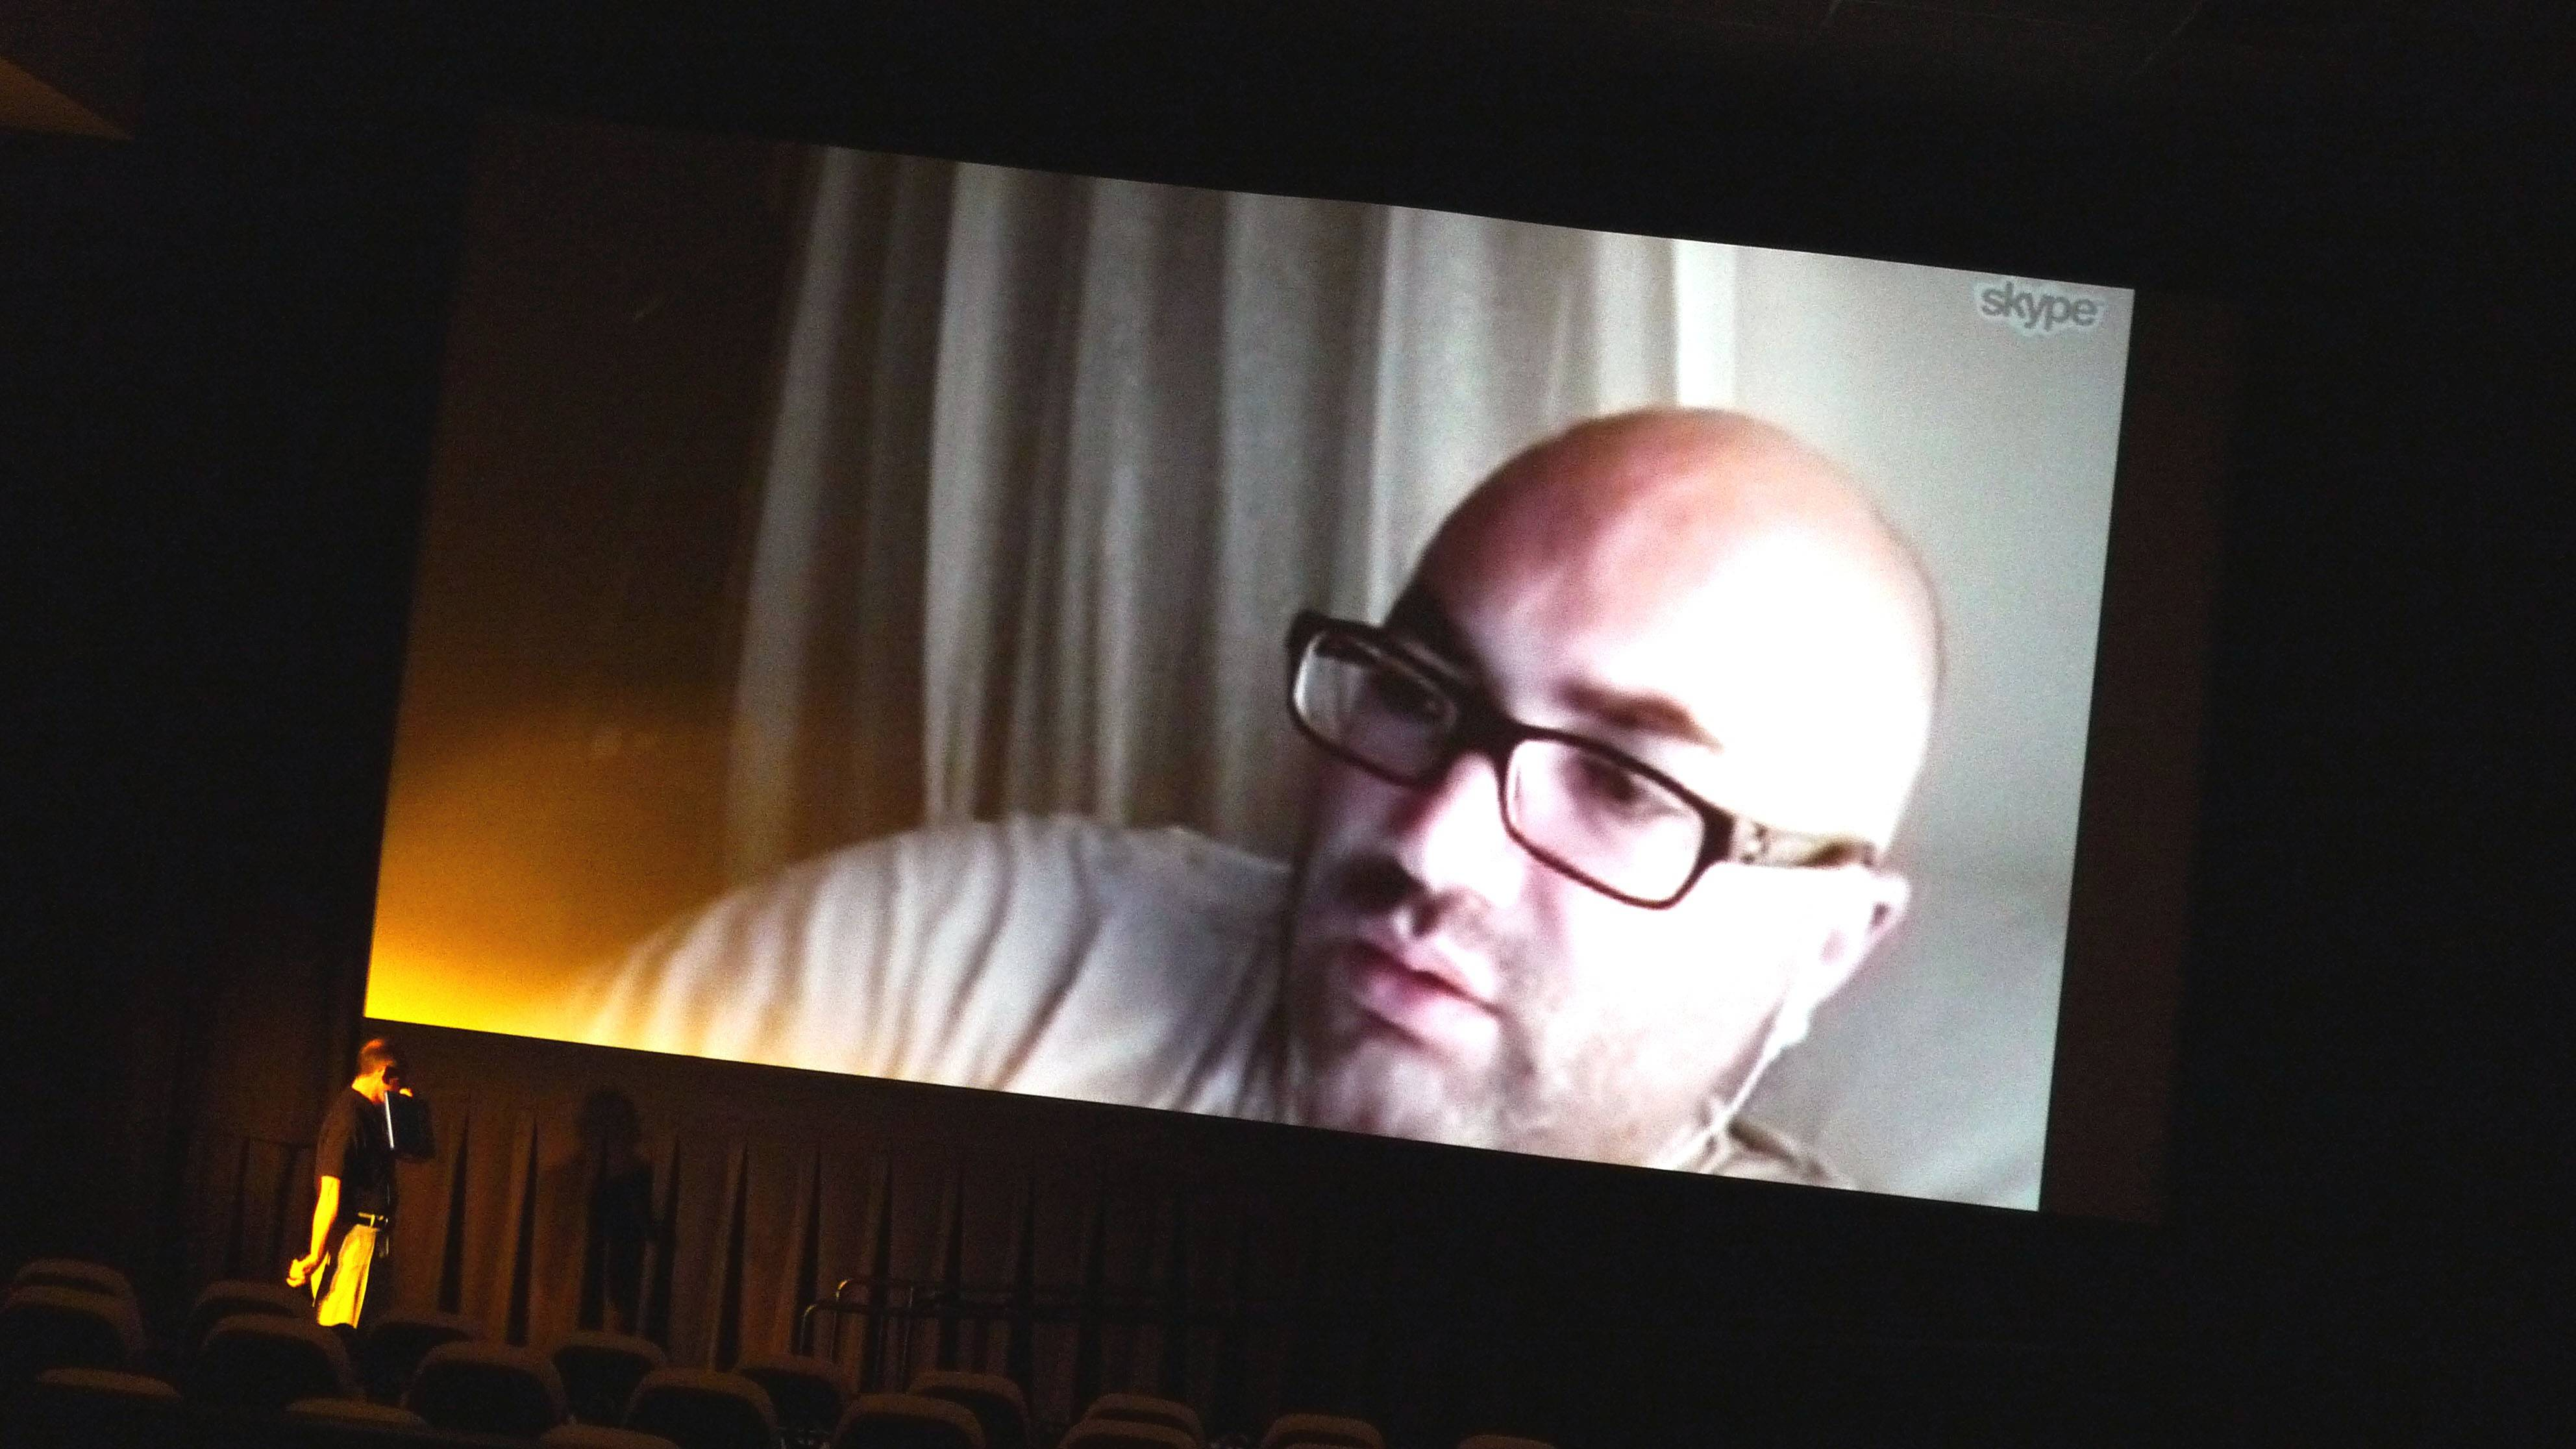 French filmmaker Karim Ouret is interviewed on Skype by J. Spencer Greene, left, at the opening night of the Blue Whiskey Film Festival in Arlington Heights.